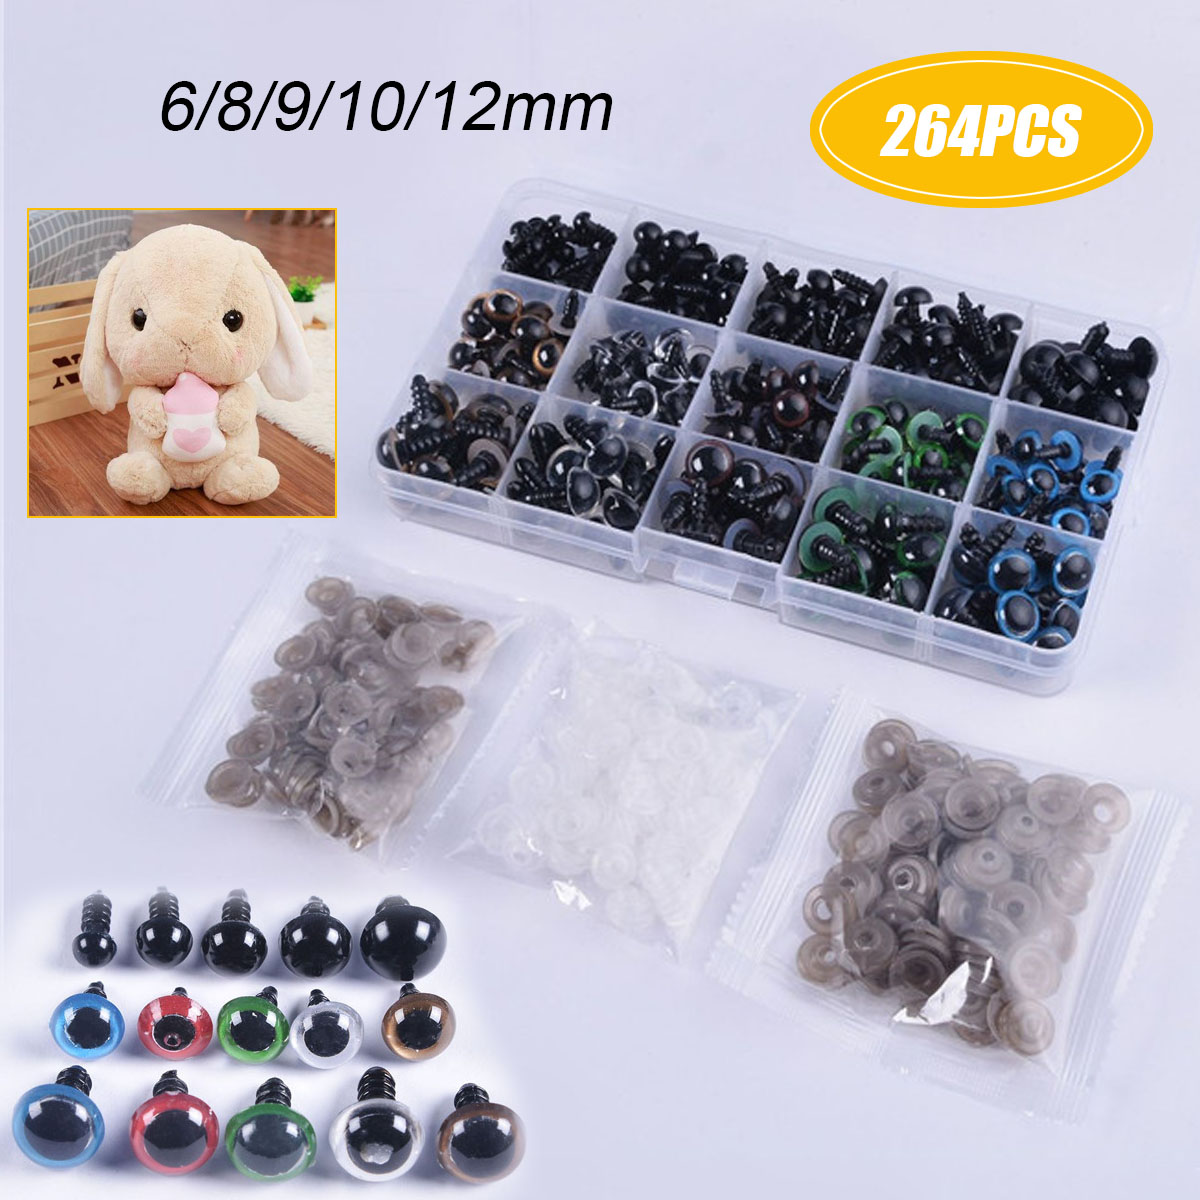 264pcs DIY Craft Kit Black 10//12mm Colorful Plastic Safety Eyes for Teddy Bear Doll Animal Puppet Craft